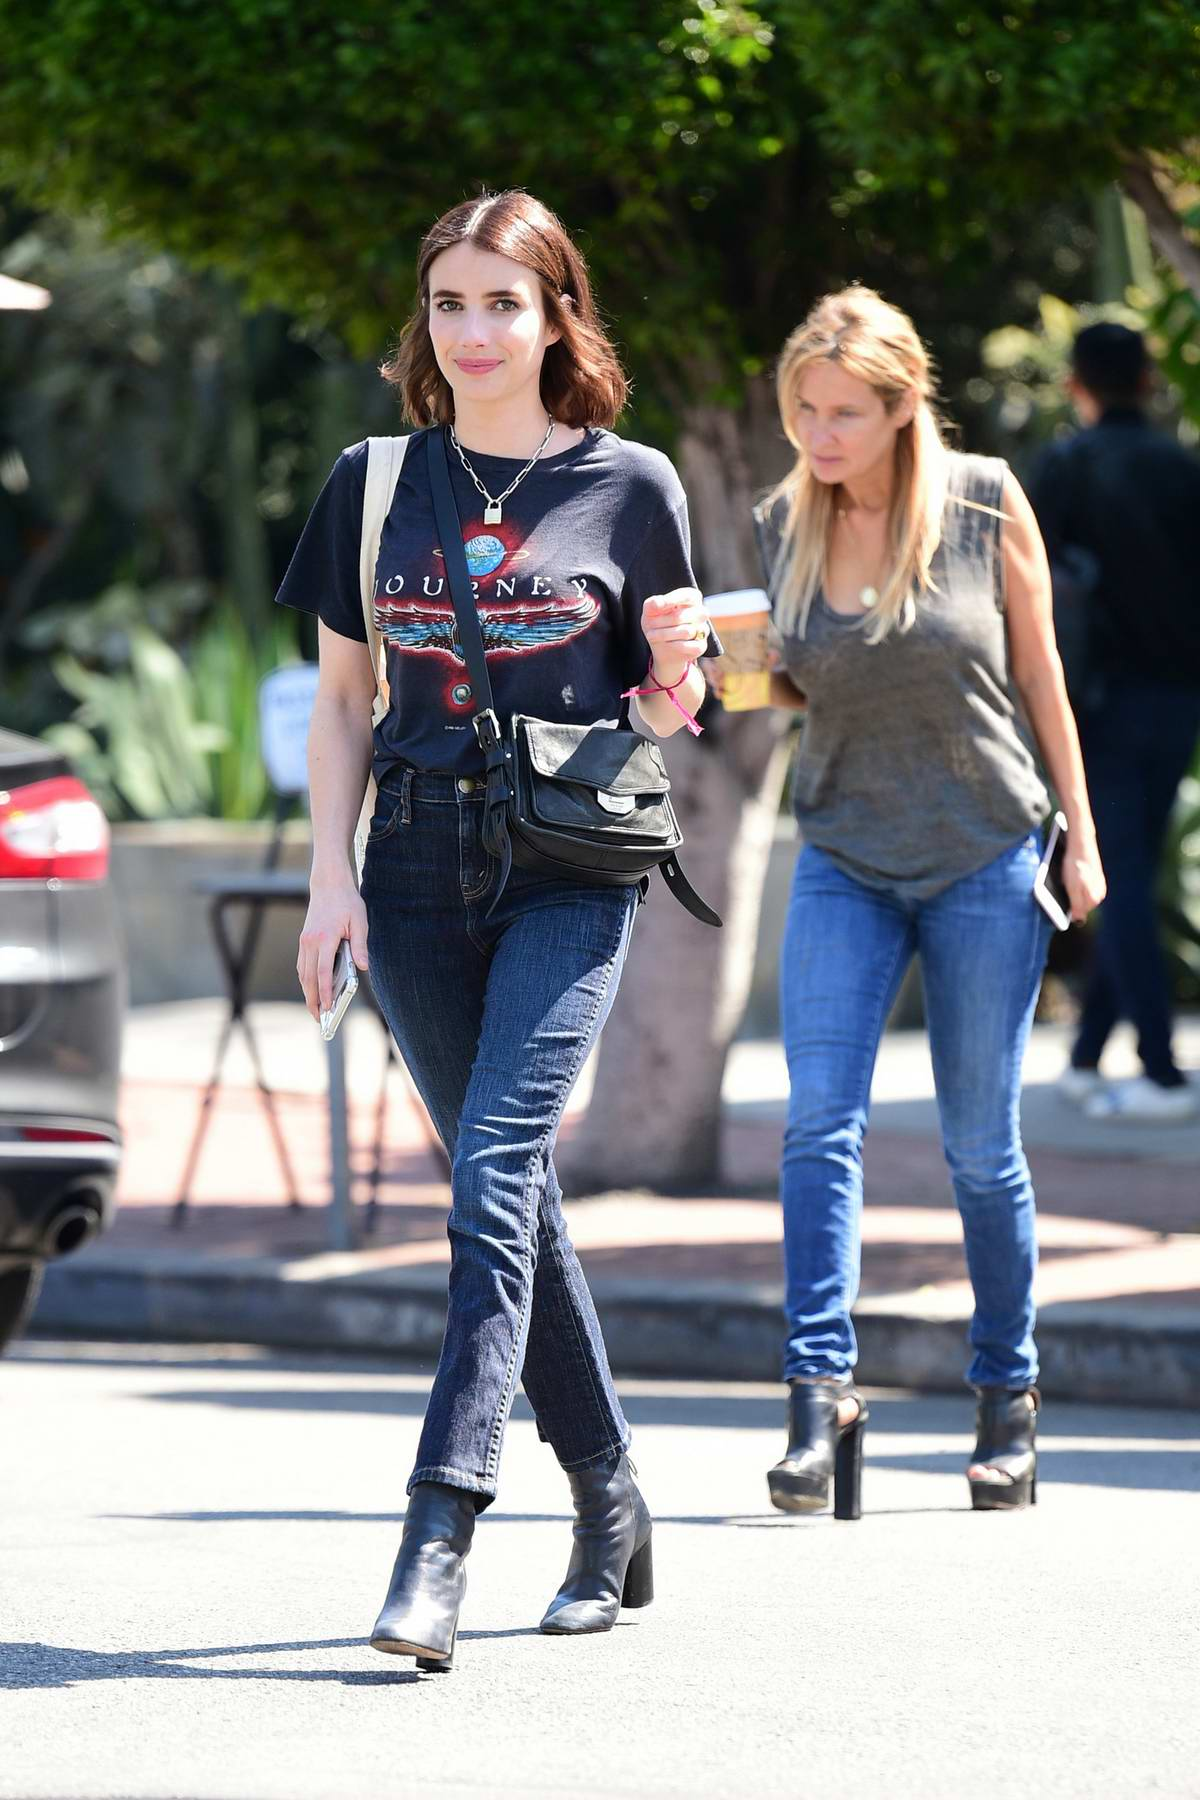 Emma Roberts smiles for the camera as she steps out in a blue tee and jeans in Los Angeles